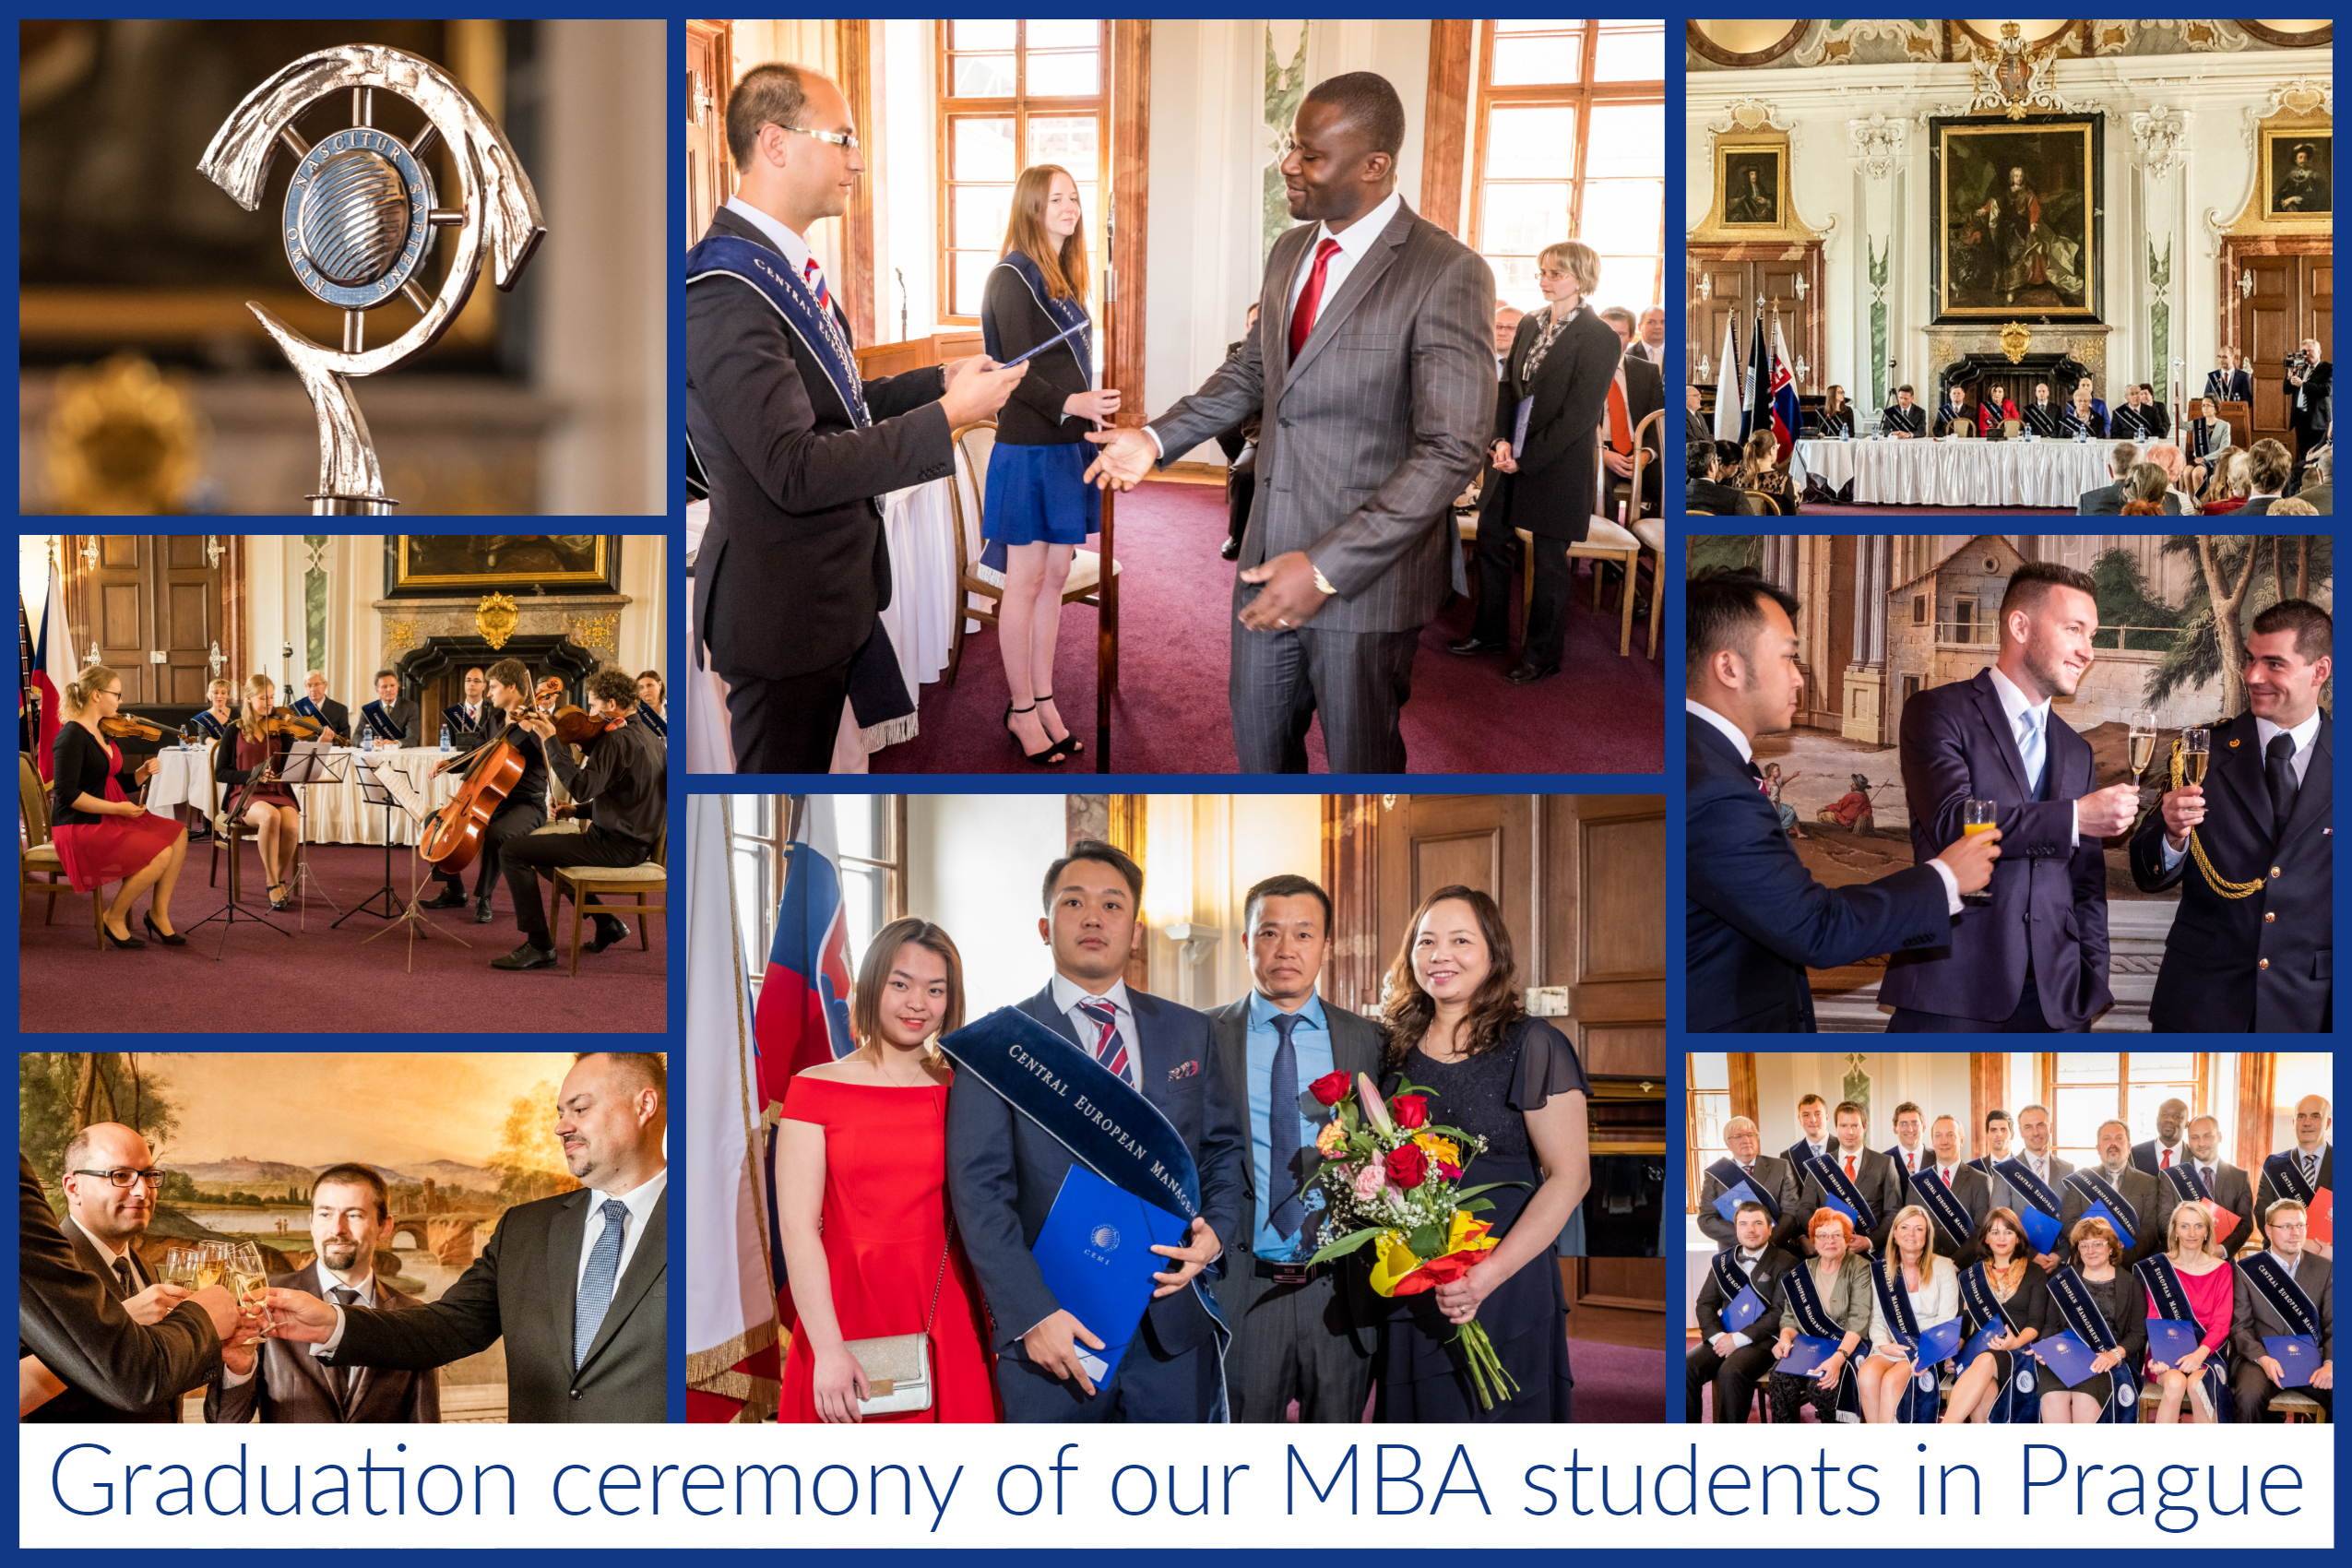 Graduation ceremony of our MBA student in Prague